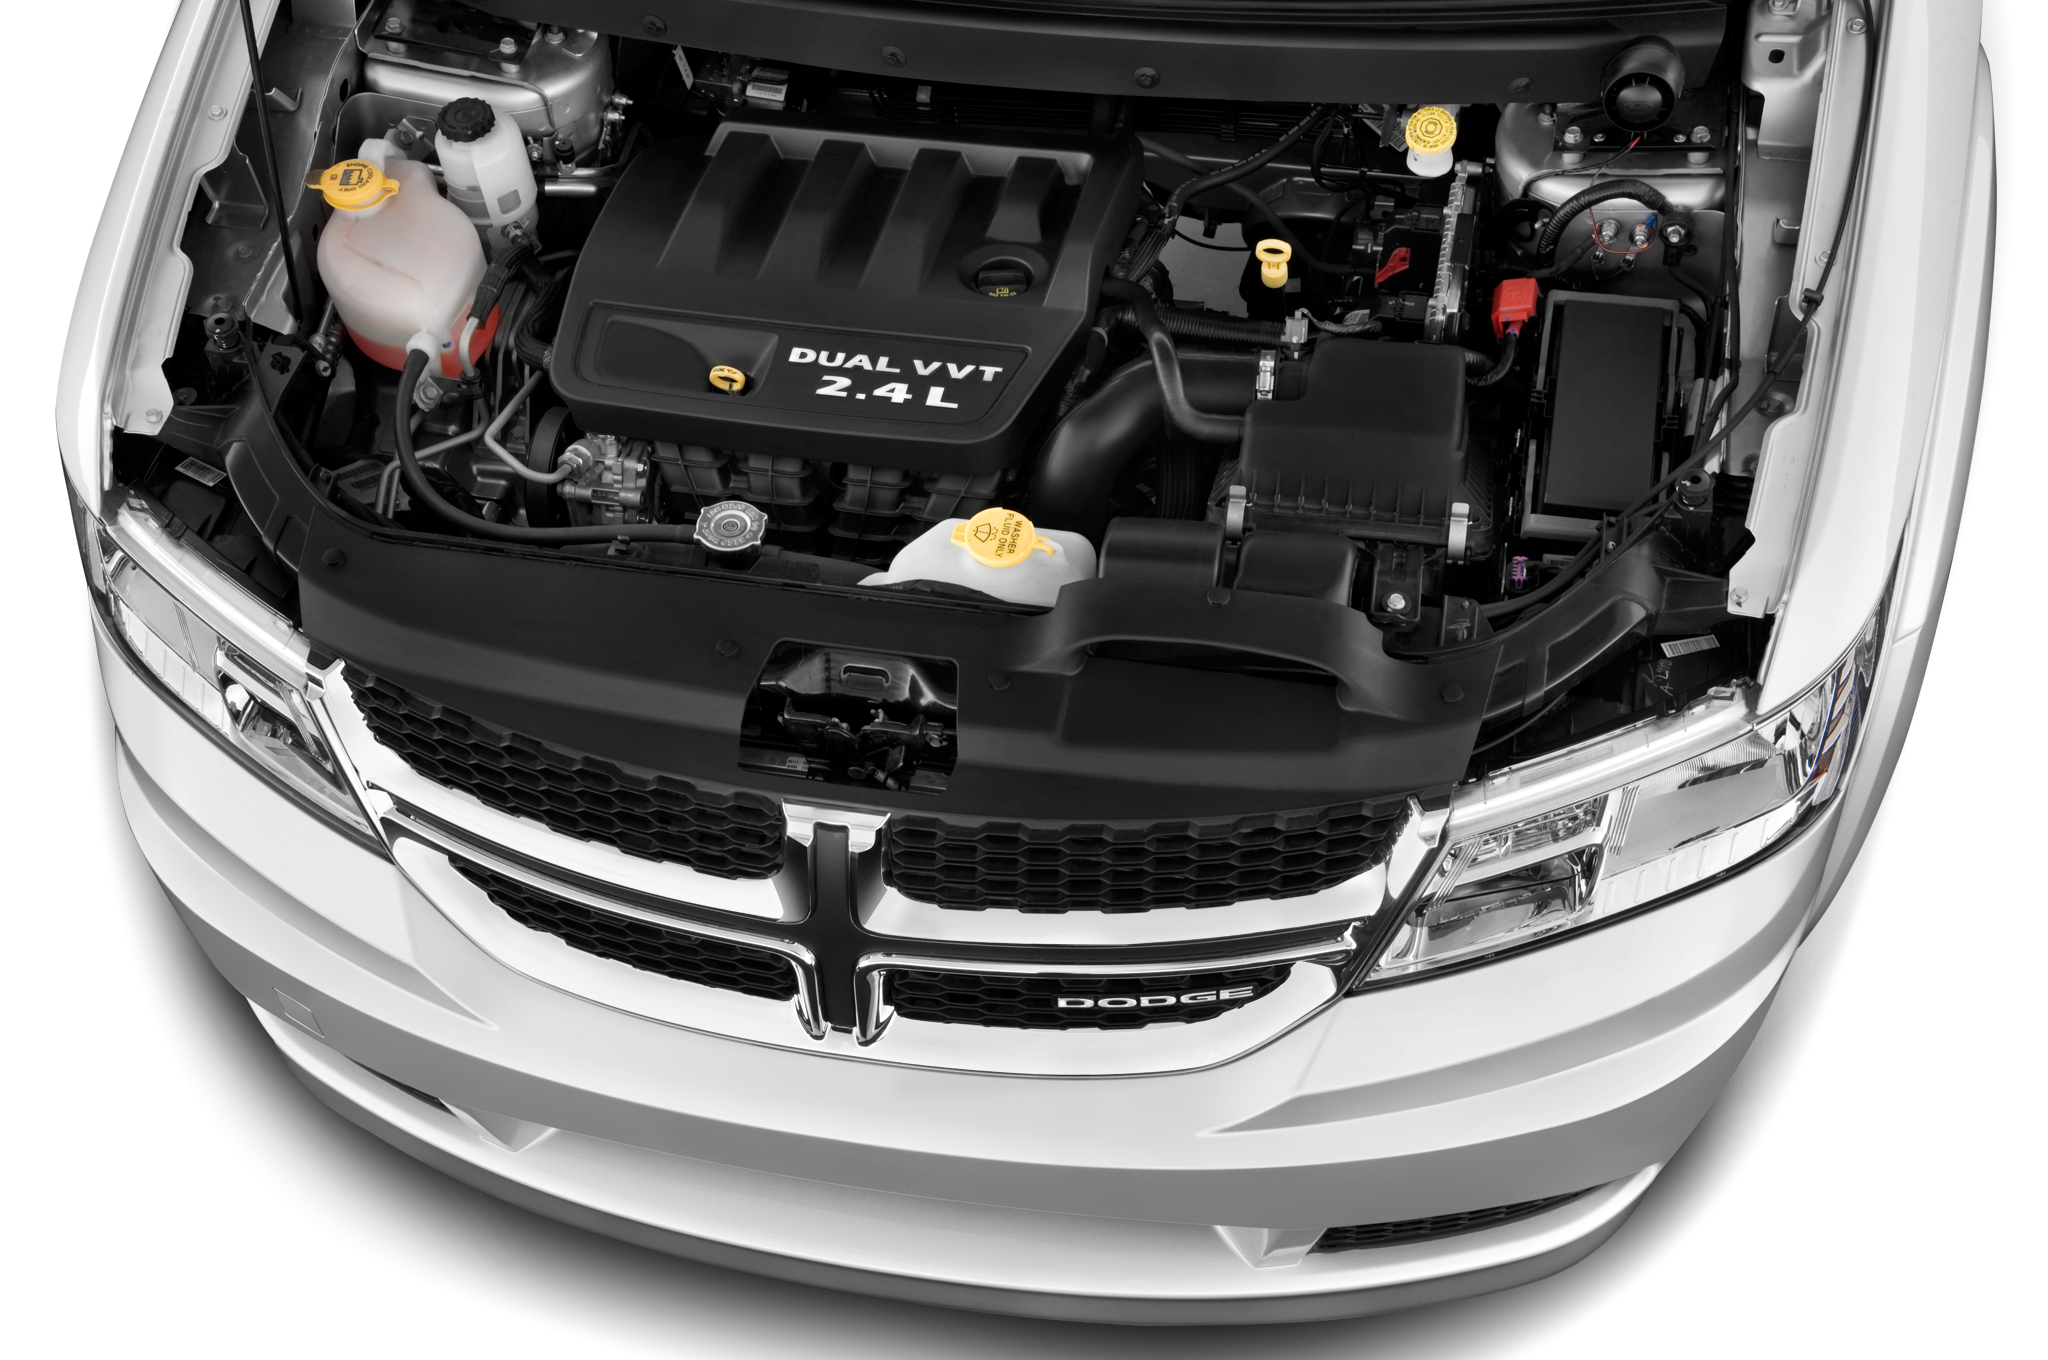 2012 Dodge Journey SXT Now Available with Four-Cylinder Engine